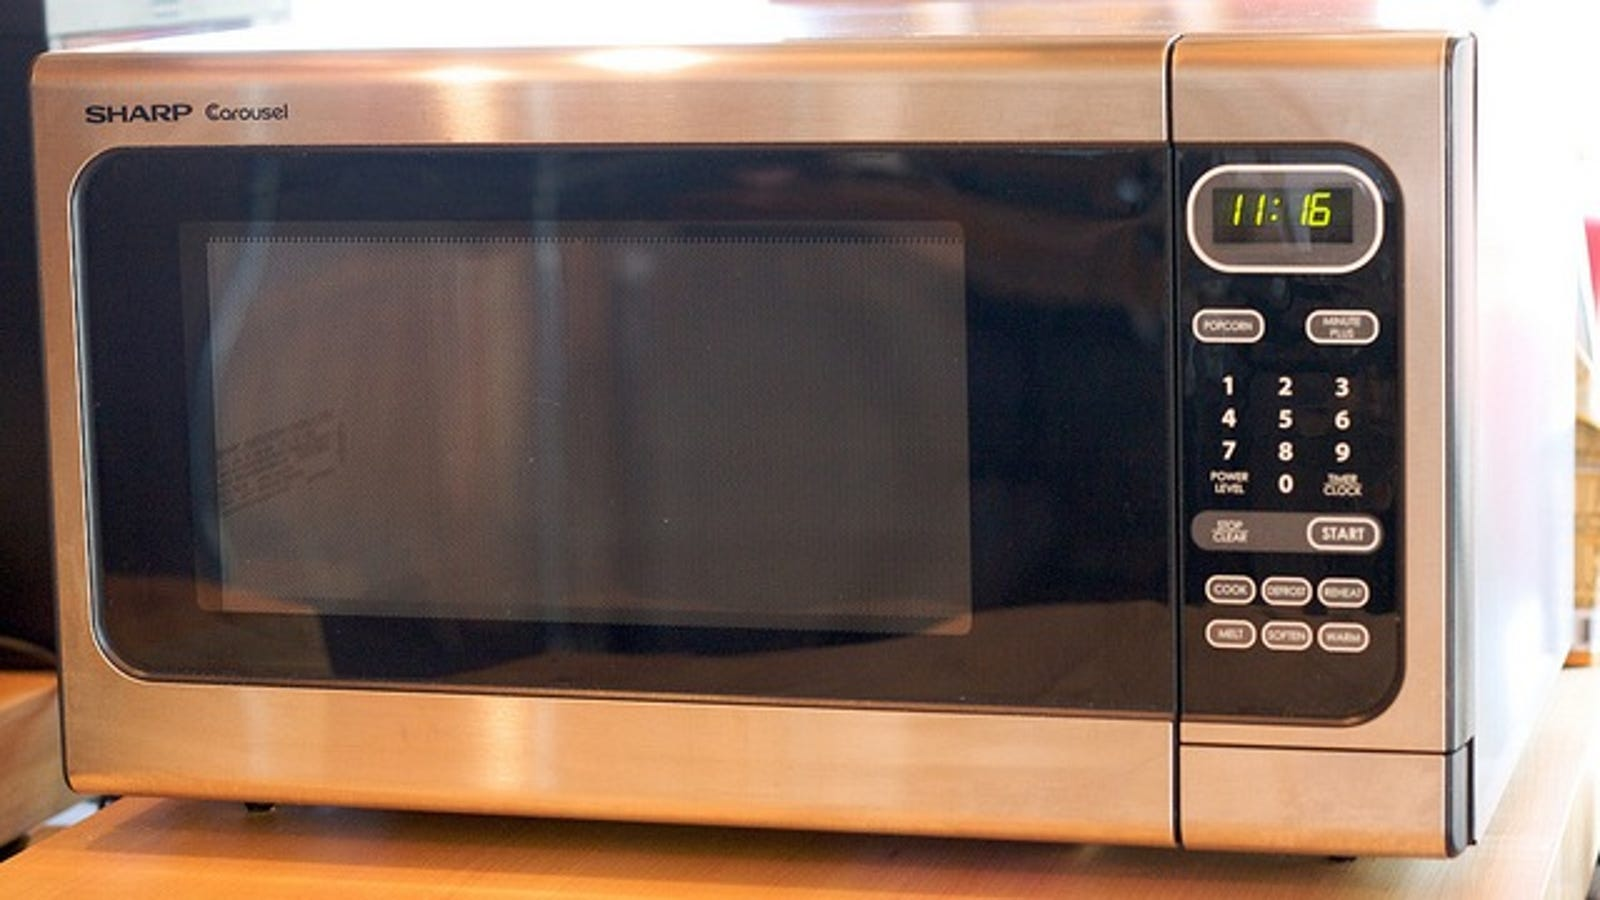 Familiarize Yourself With Your Microwaves Power Settings To Make